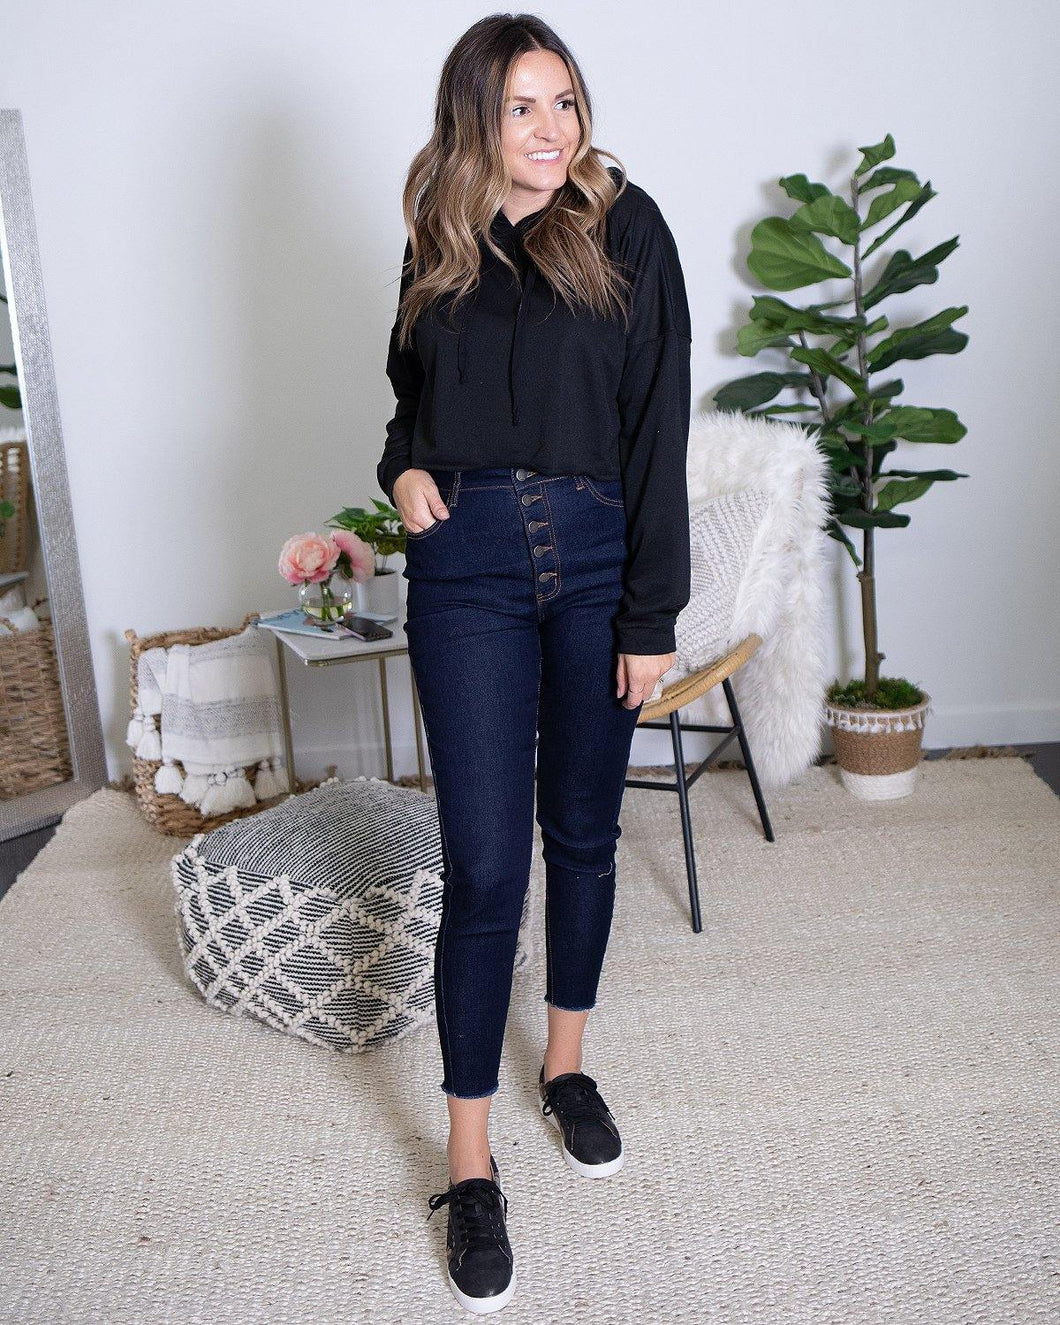 Button Fly Jeans - The Local Women's Boutique Clothing